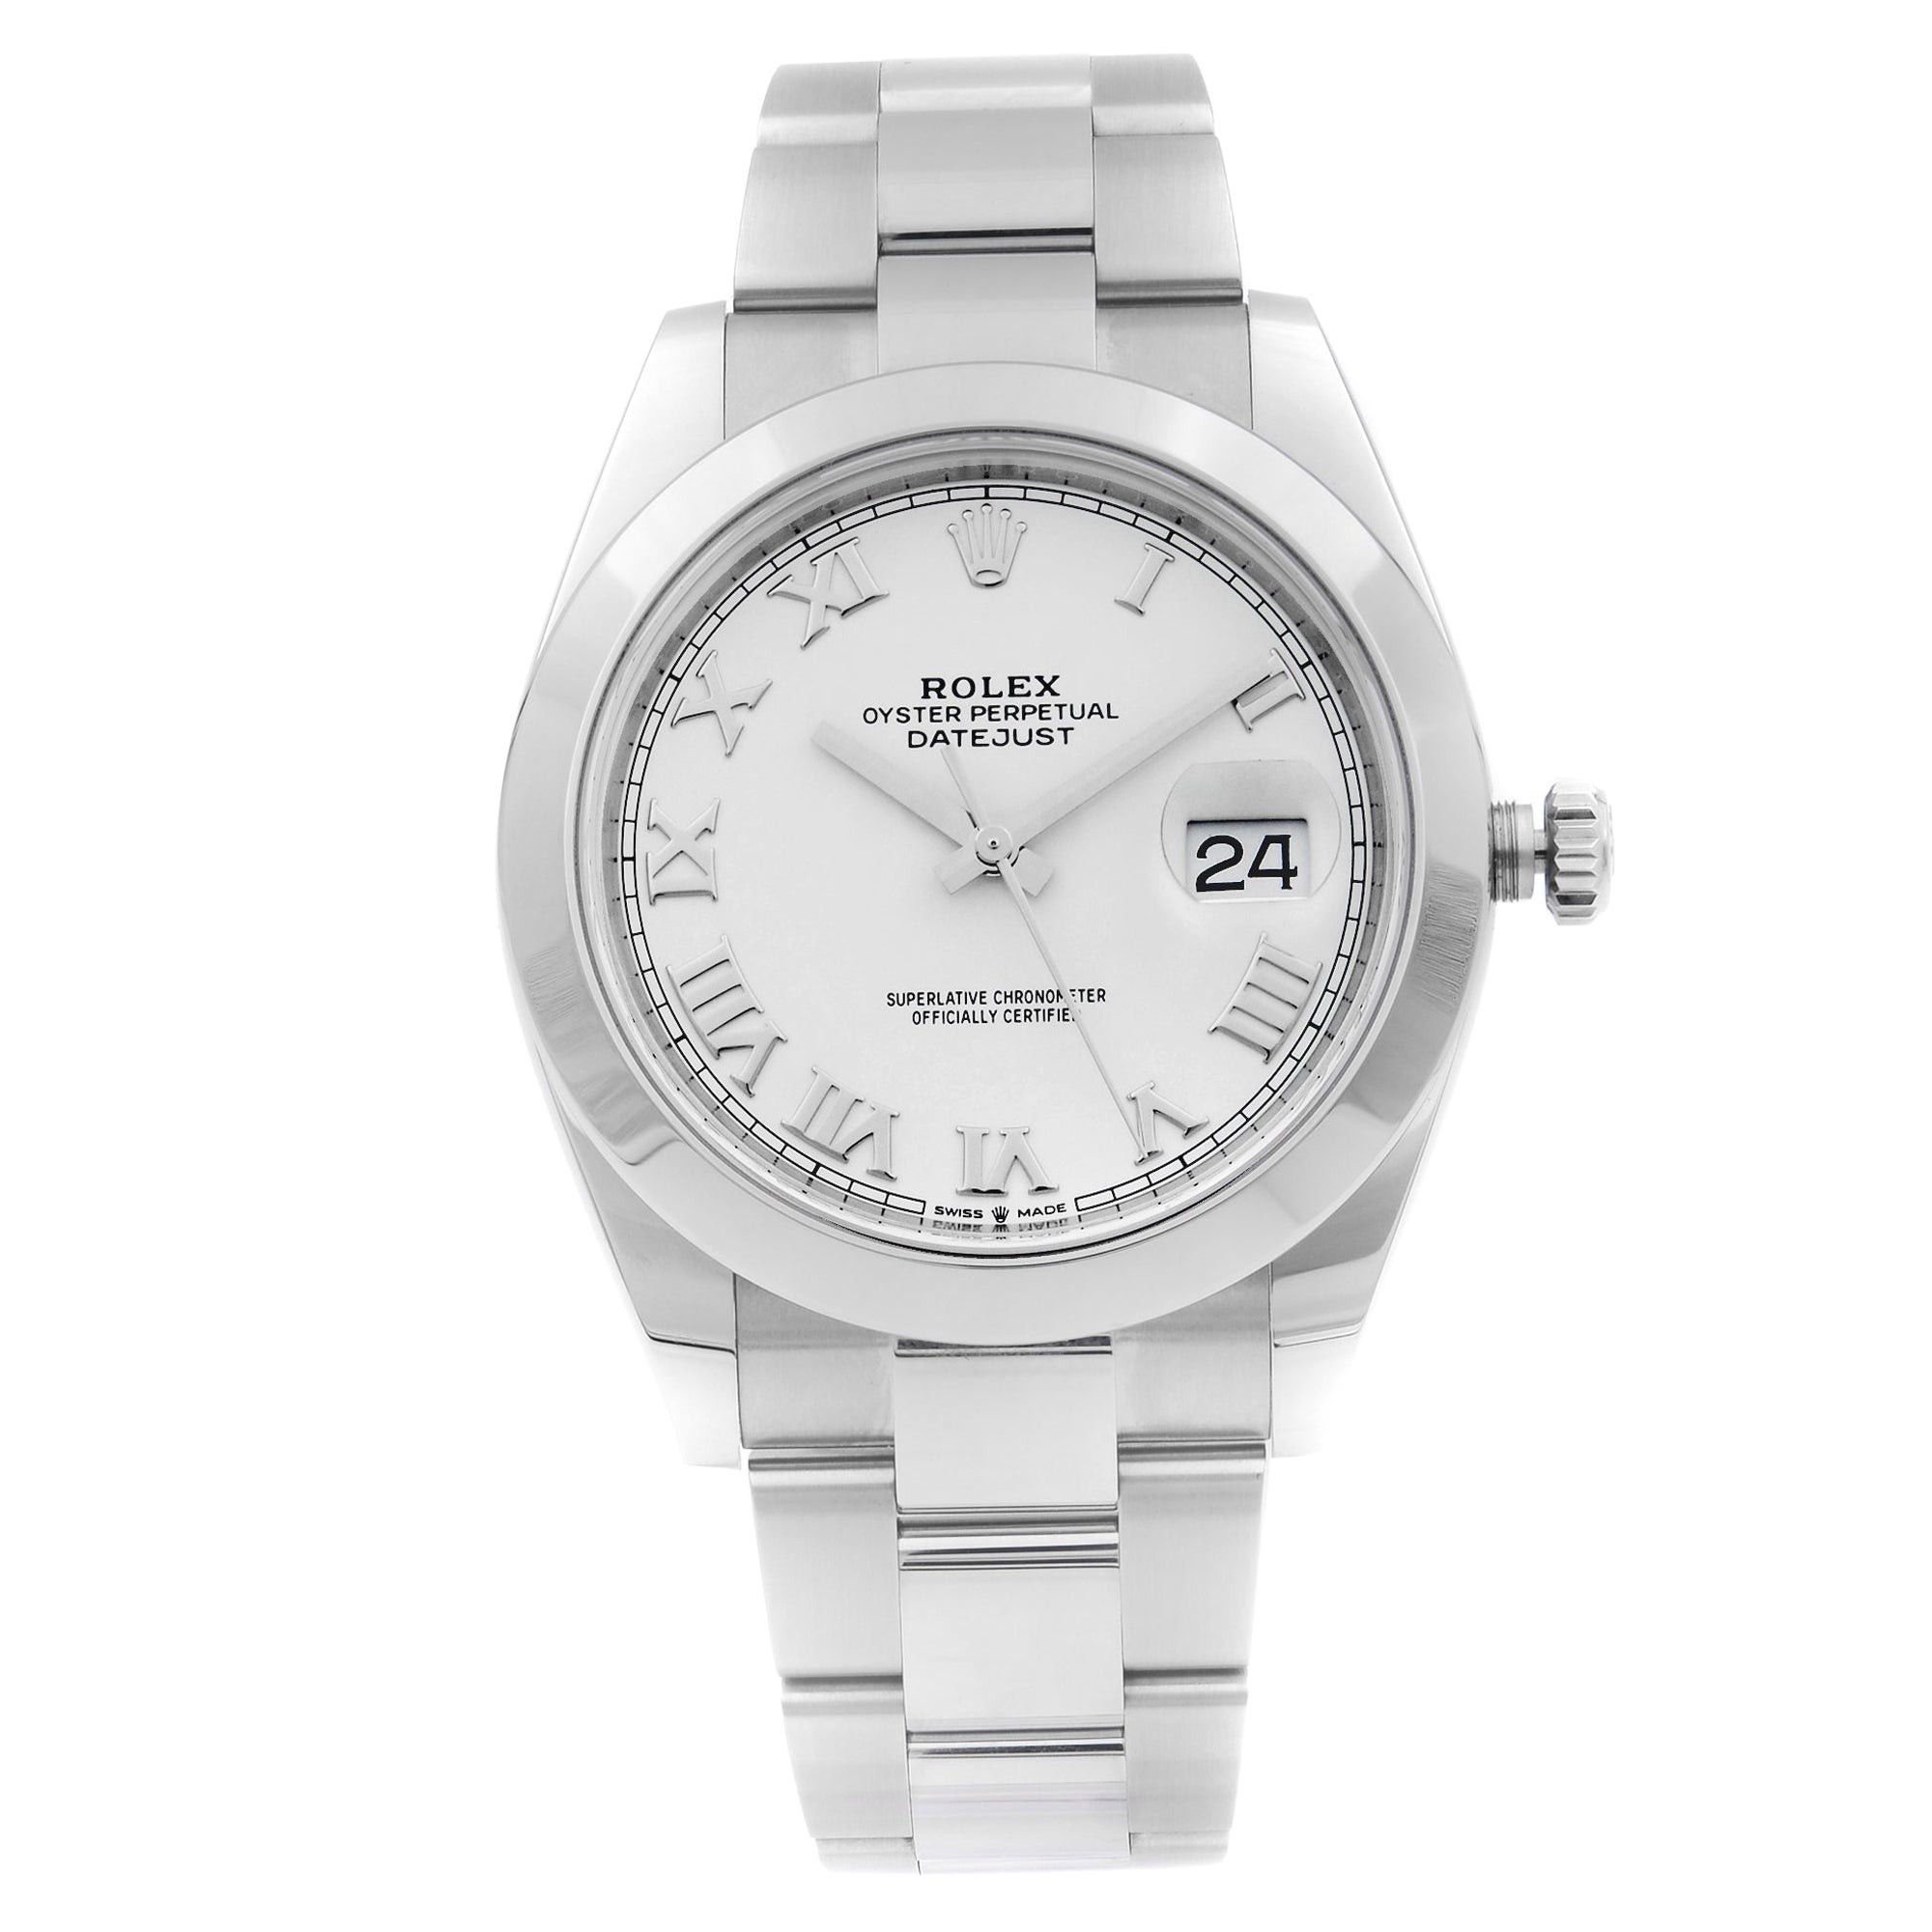 Rolex Datejust Steel White Roman Dial Smooth Automatic Men's Watch 126300